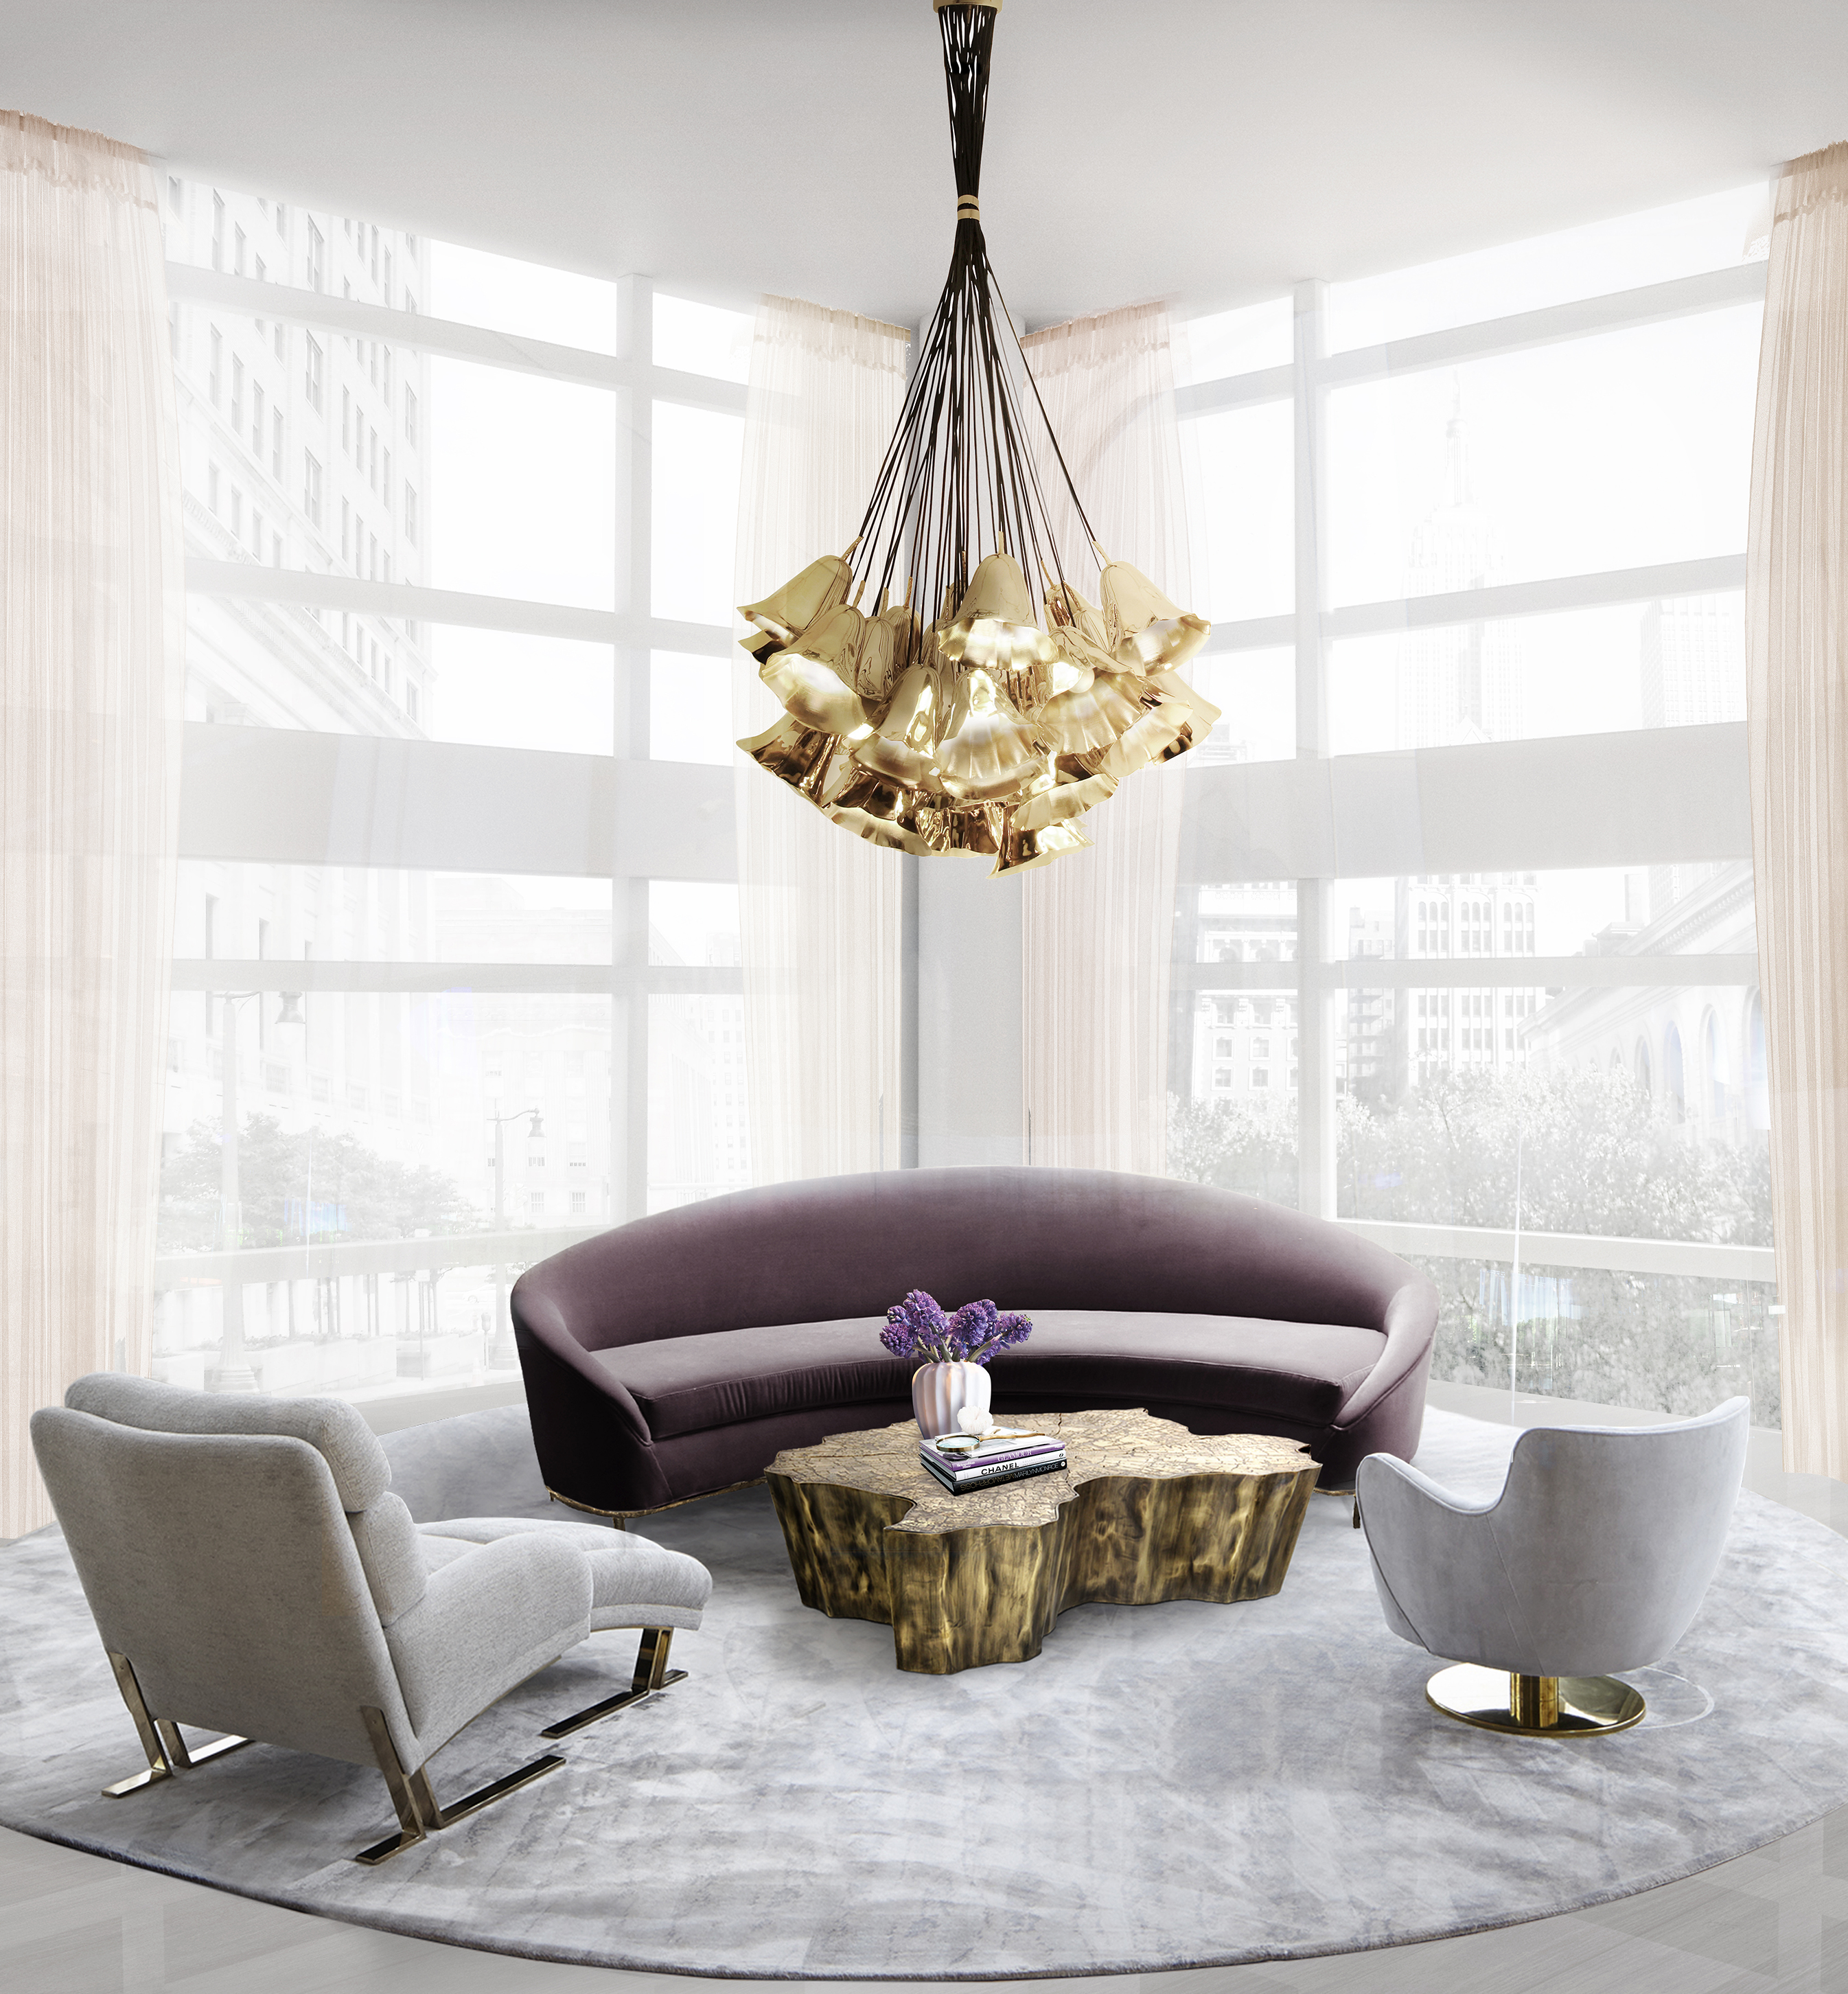 The Incredible Selection Of Living Room Couches the incredible selection of living room couches The Incredible Selection Of Living Room Couches gia chandelier vamp sofa koket projects